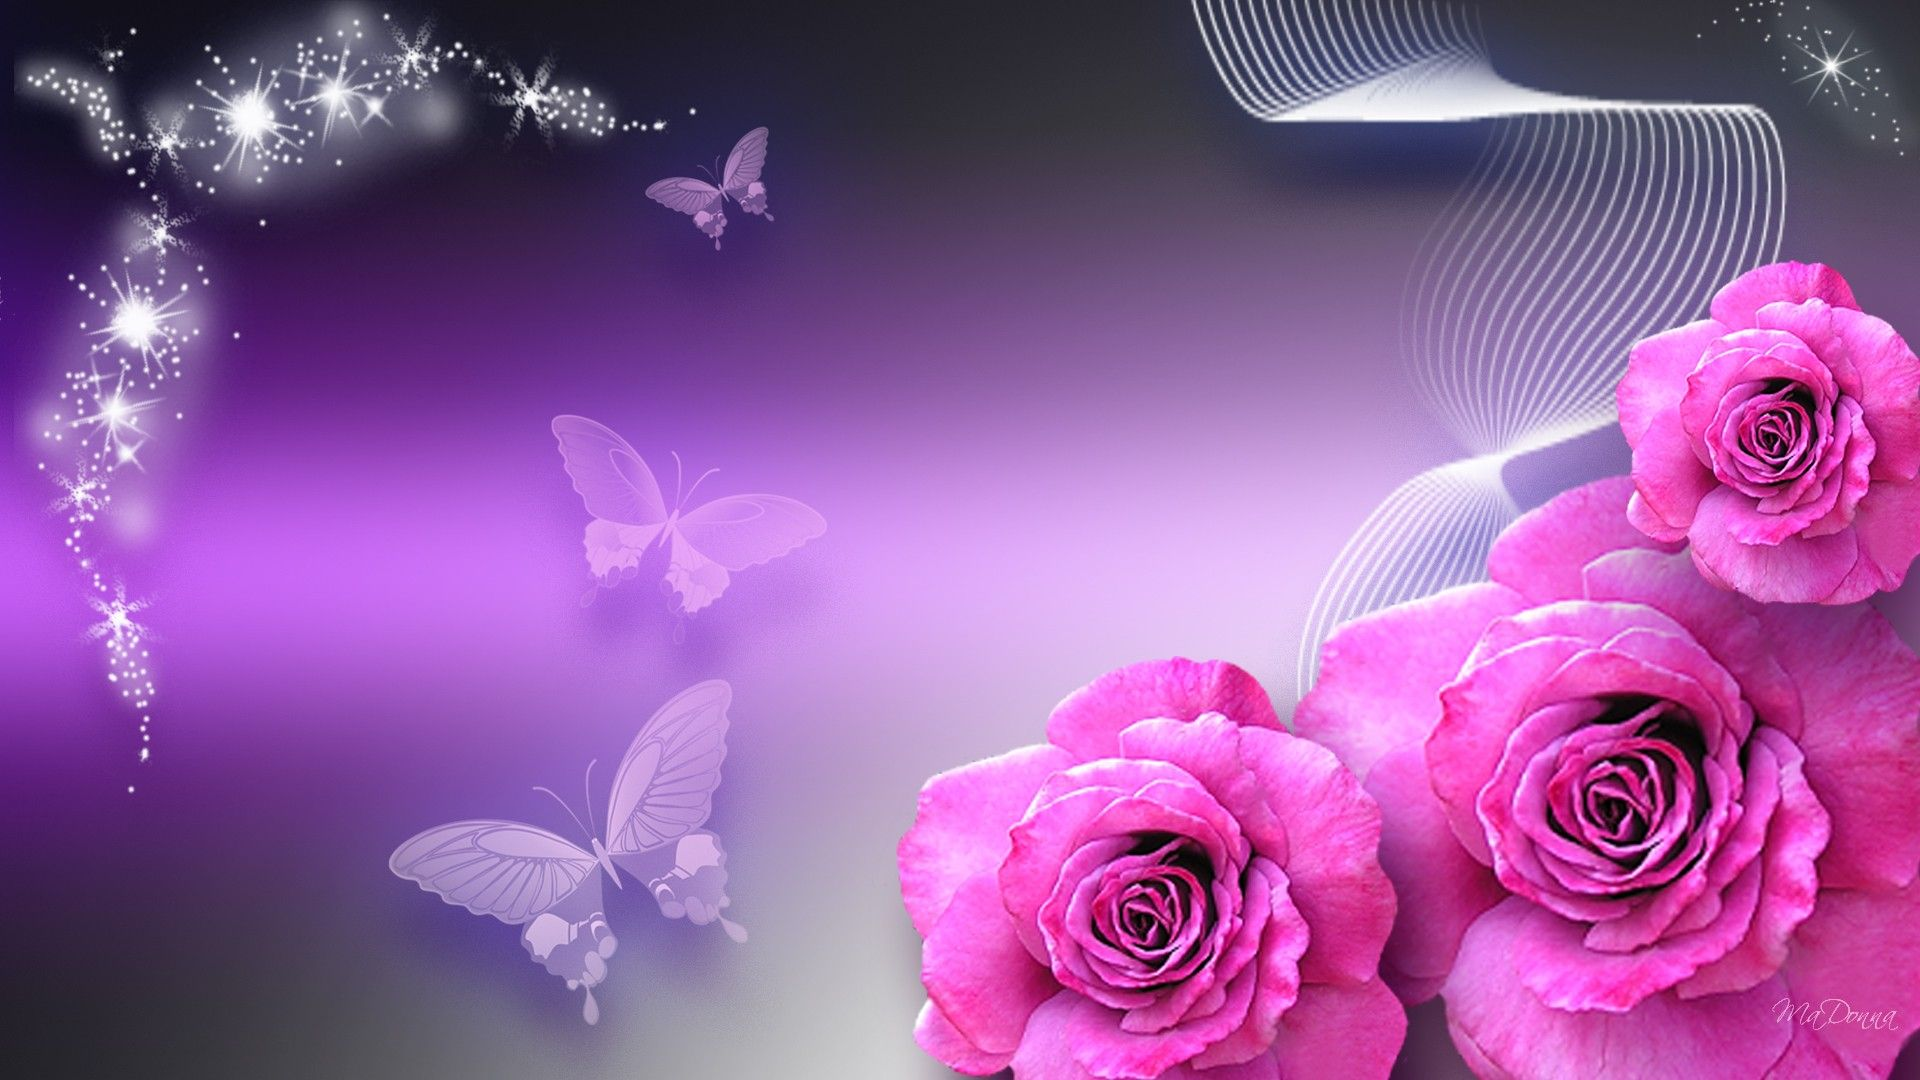 Rainbow Glitter Graphic Pretty Butterfly Pink Butterfly 1920 1080 Butterfly Images Wallpapers Pink Rose Wallpaper Hd Purple Glitter Wallpaper Purple Wallpaper